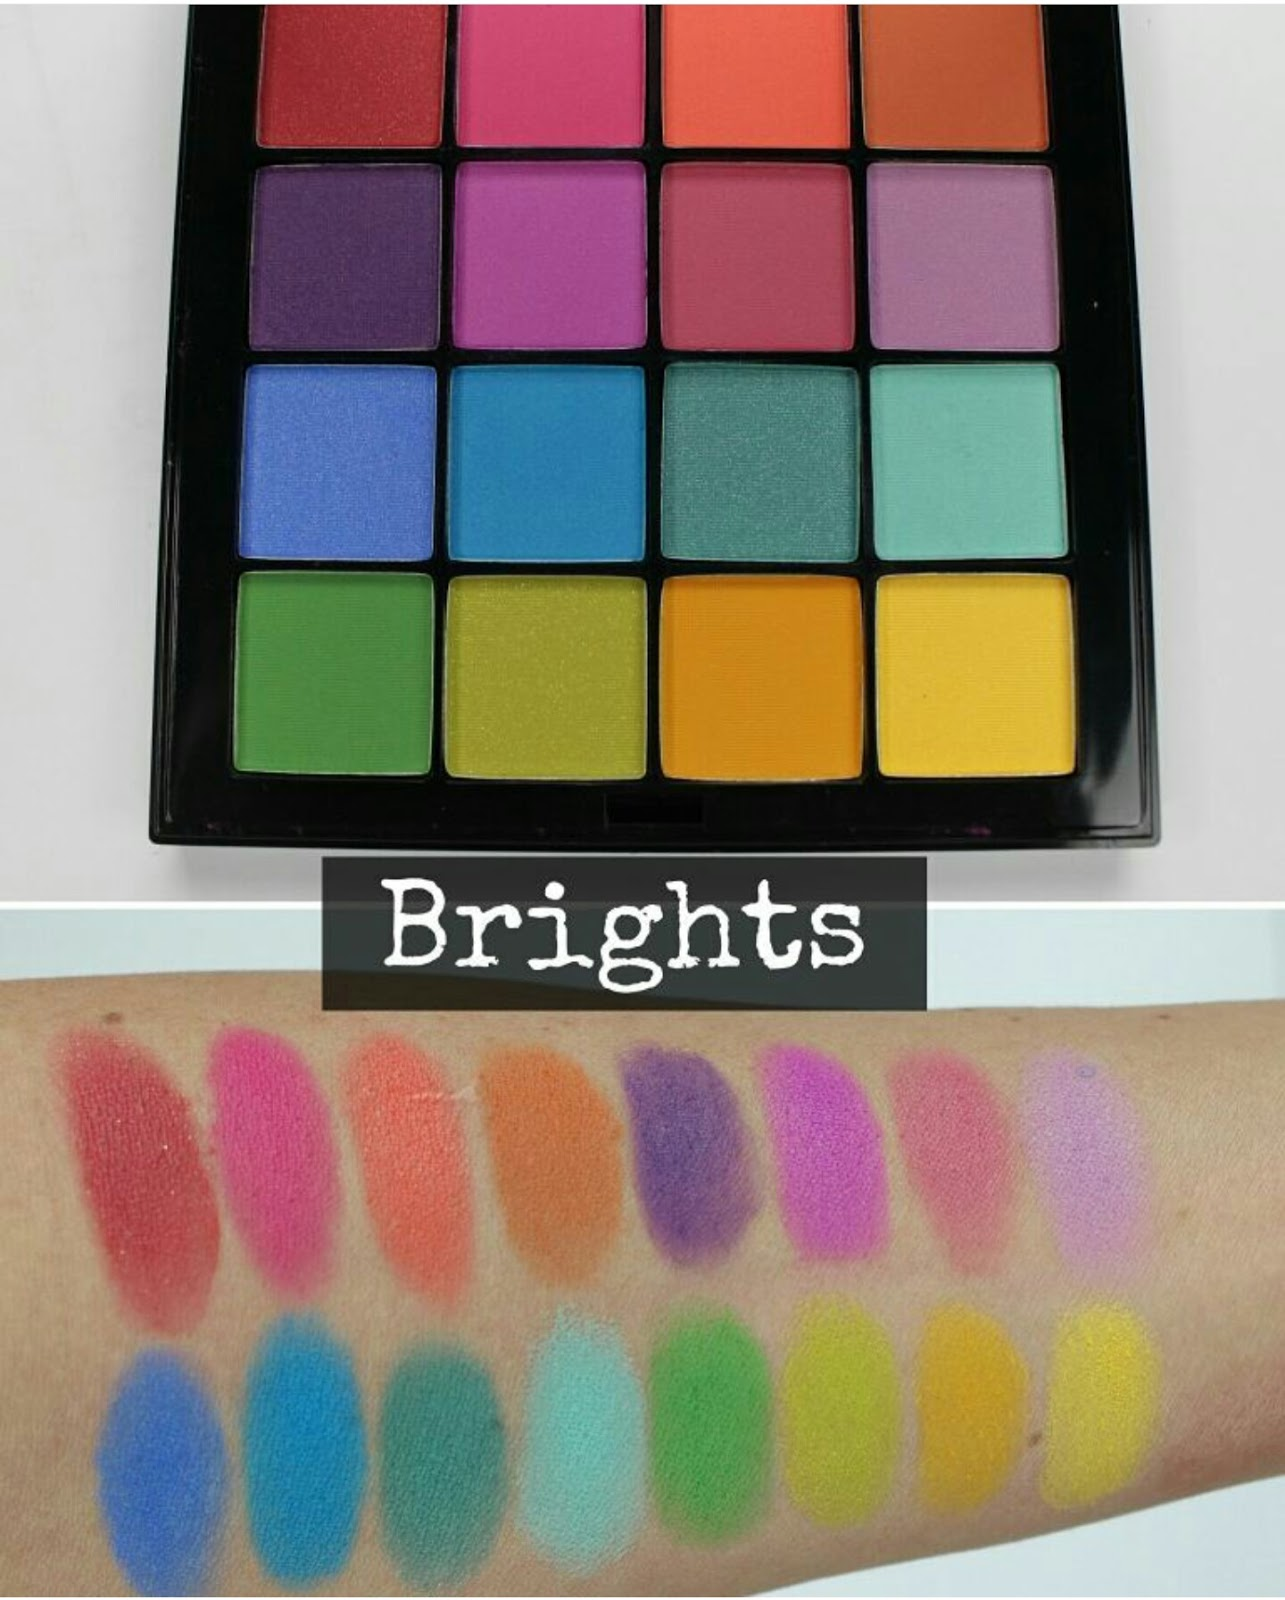 nyx-ultimate-eyeshadow-palette-swatches